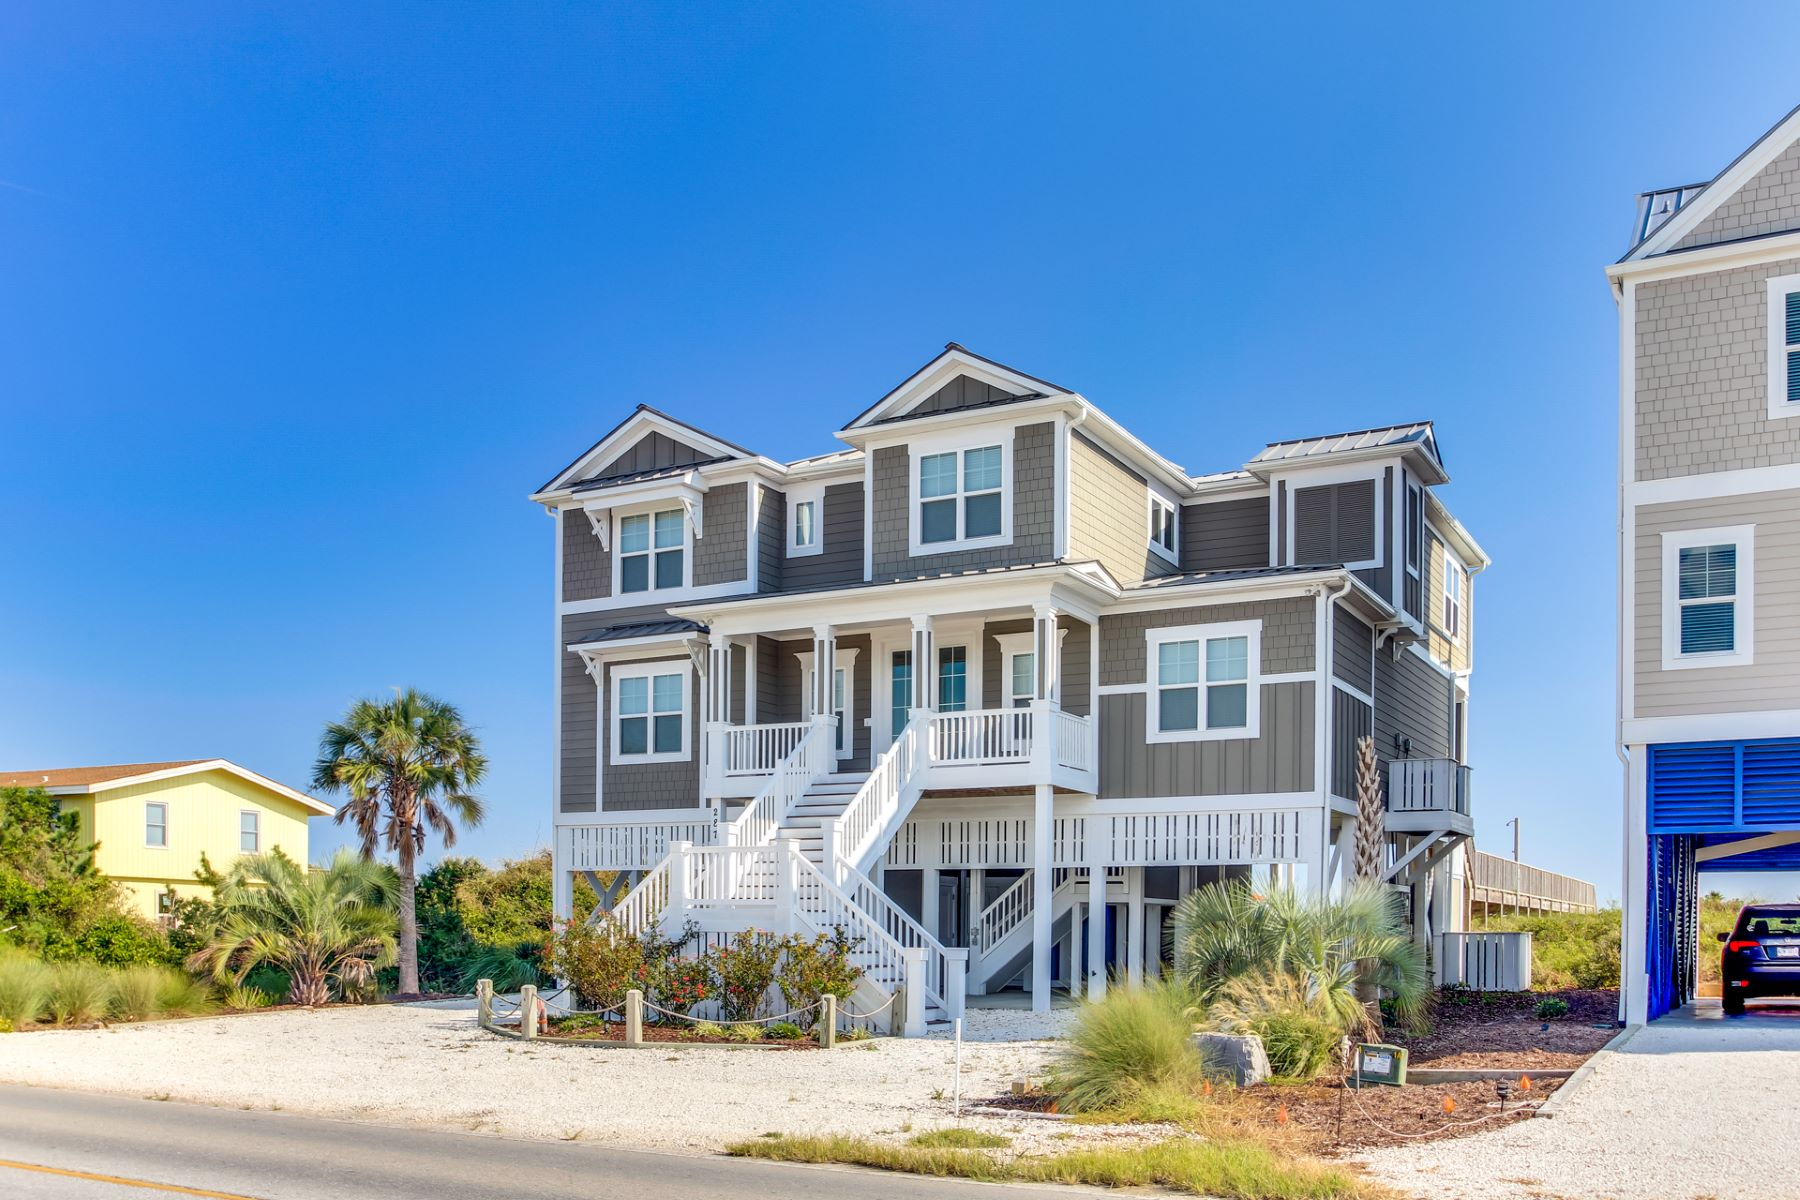 Single Family Homes for Active at Luxury Ocean Front Home 287 Ocean Boulevard W. Holden Beach, North Carolina 28462 United States